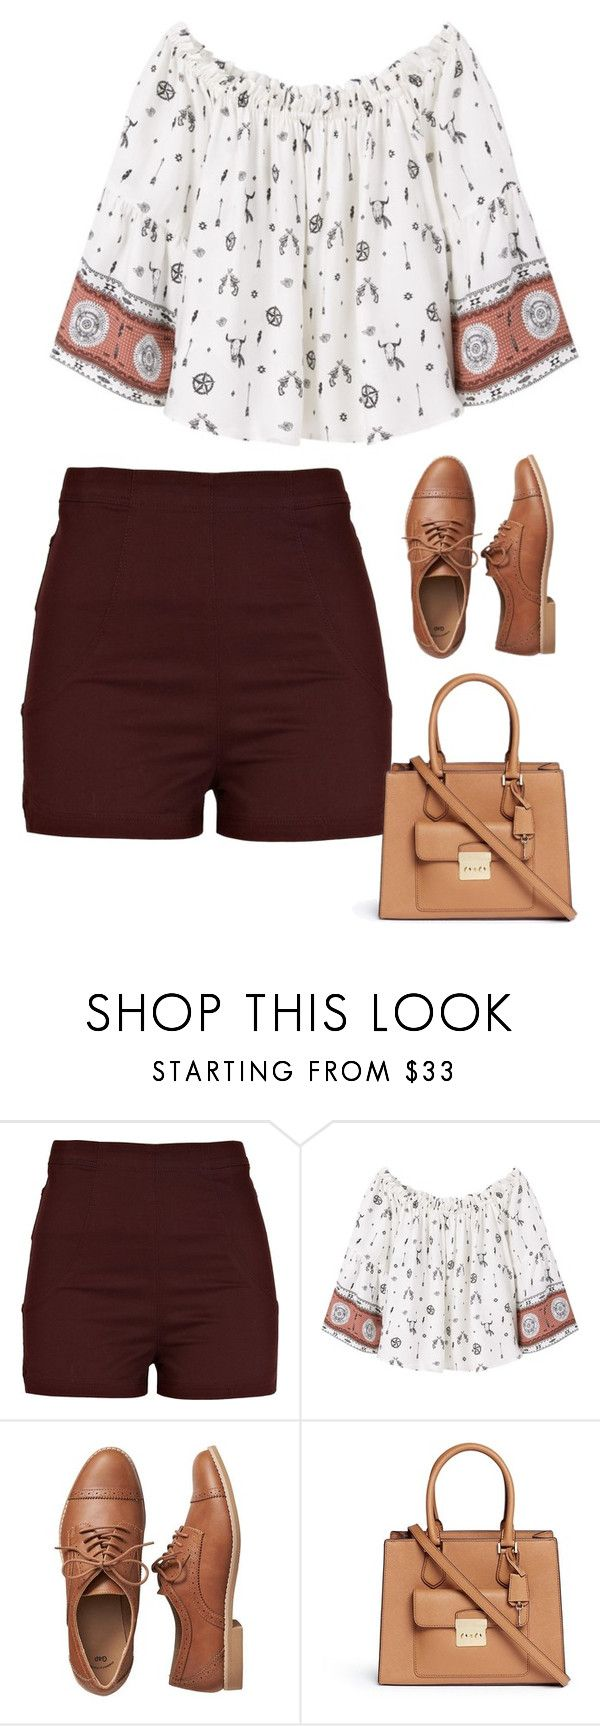 """""""Sin título #4577"""" by xoxominyeol ❤ liked on Polyvore featuring River Island, MANGO, Gap and Michael Kors"""